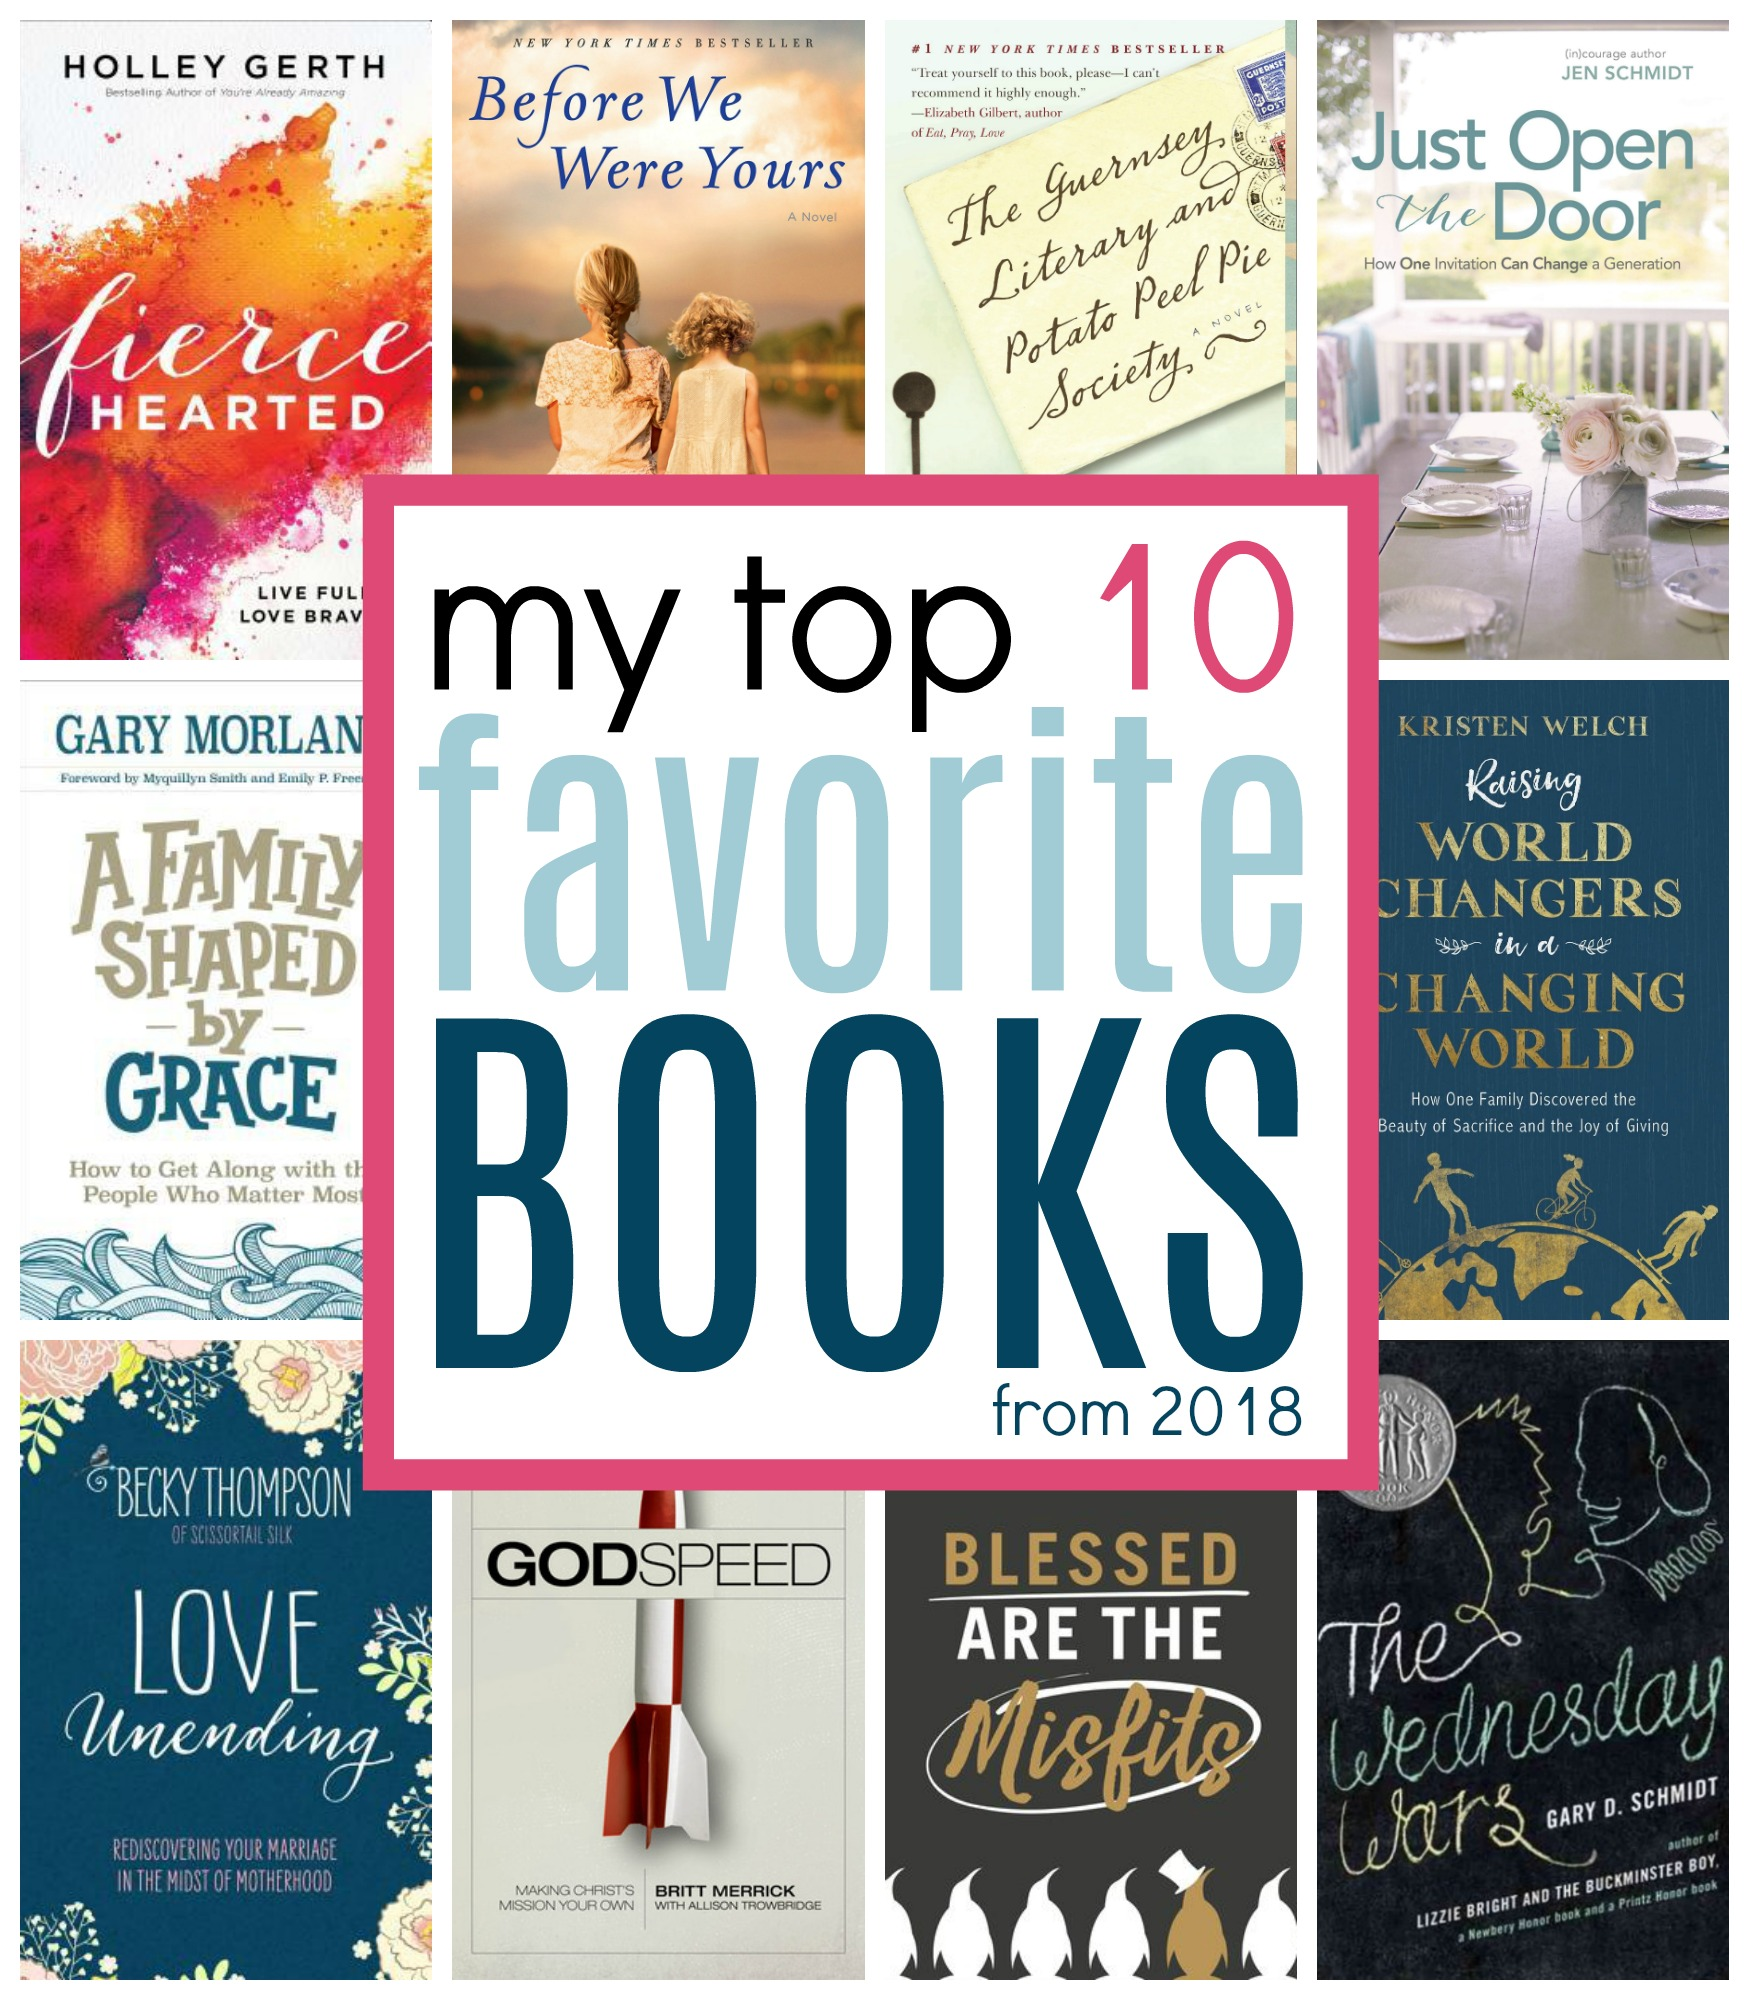 My Top 10 Favorite Books From 2018